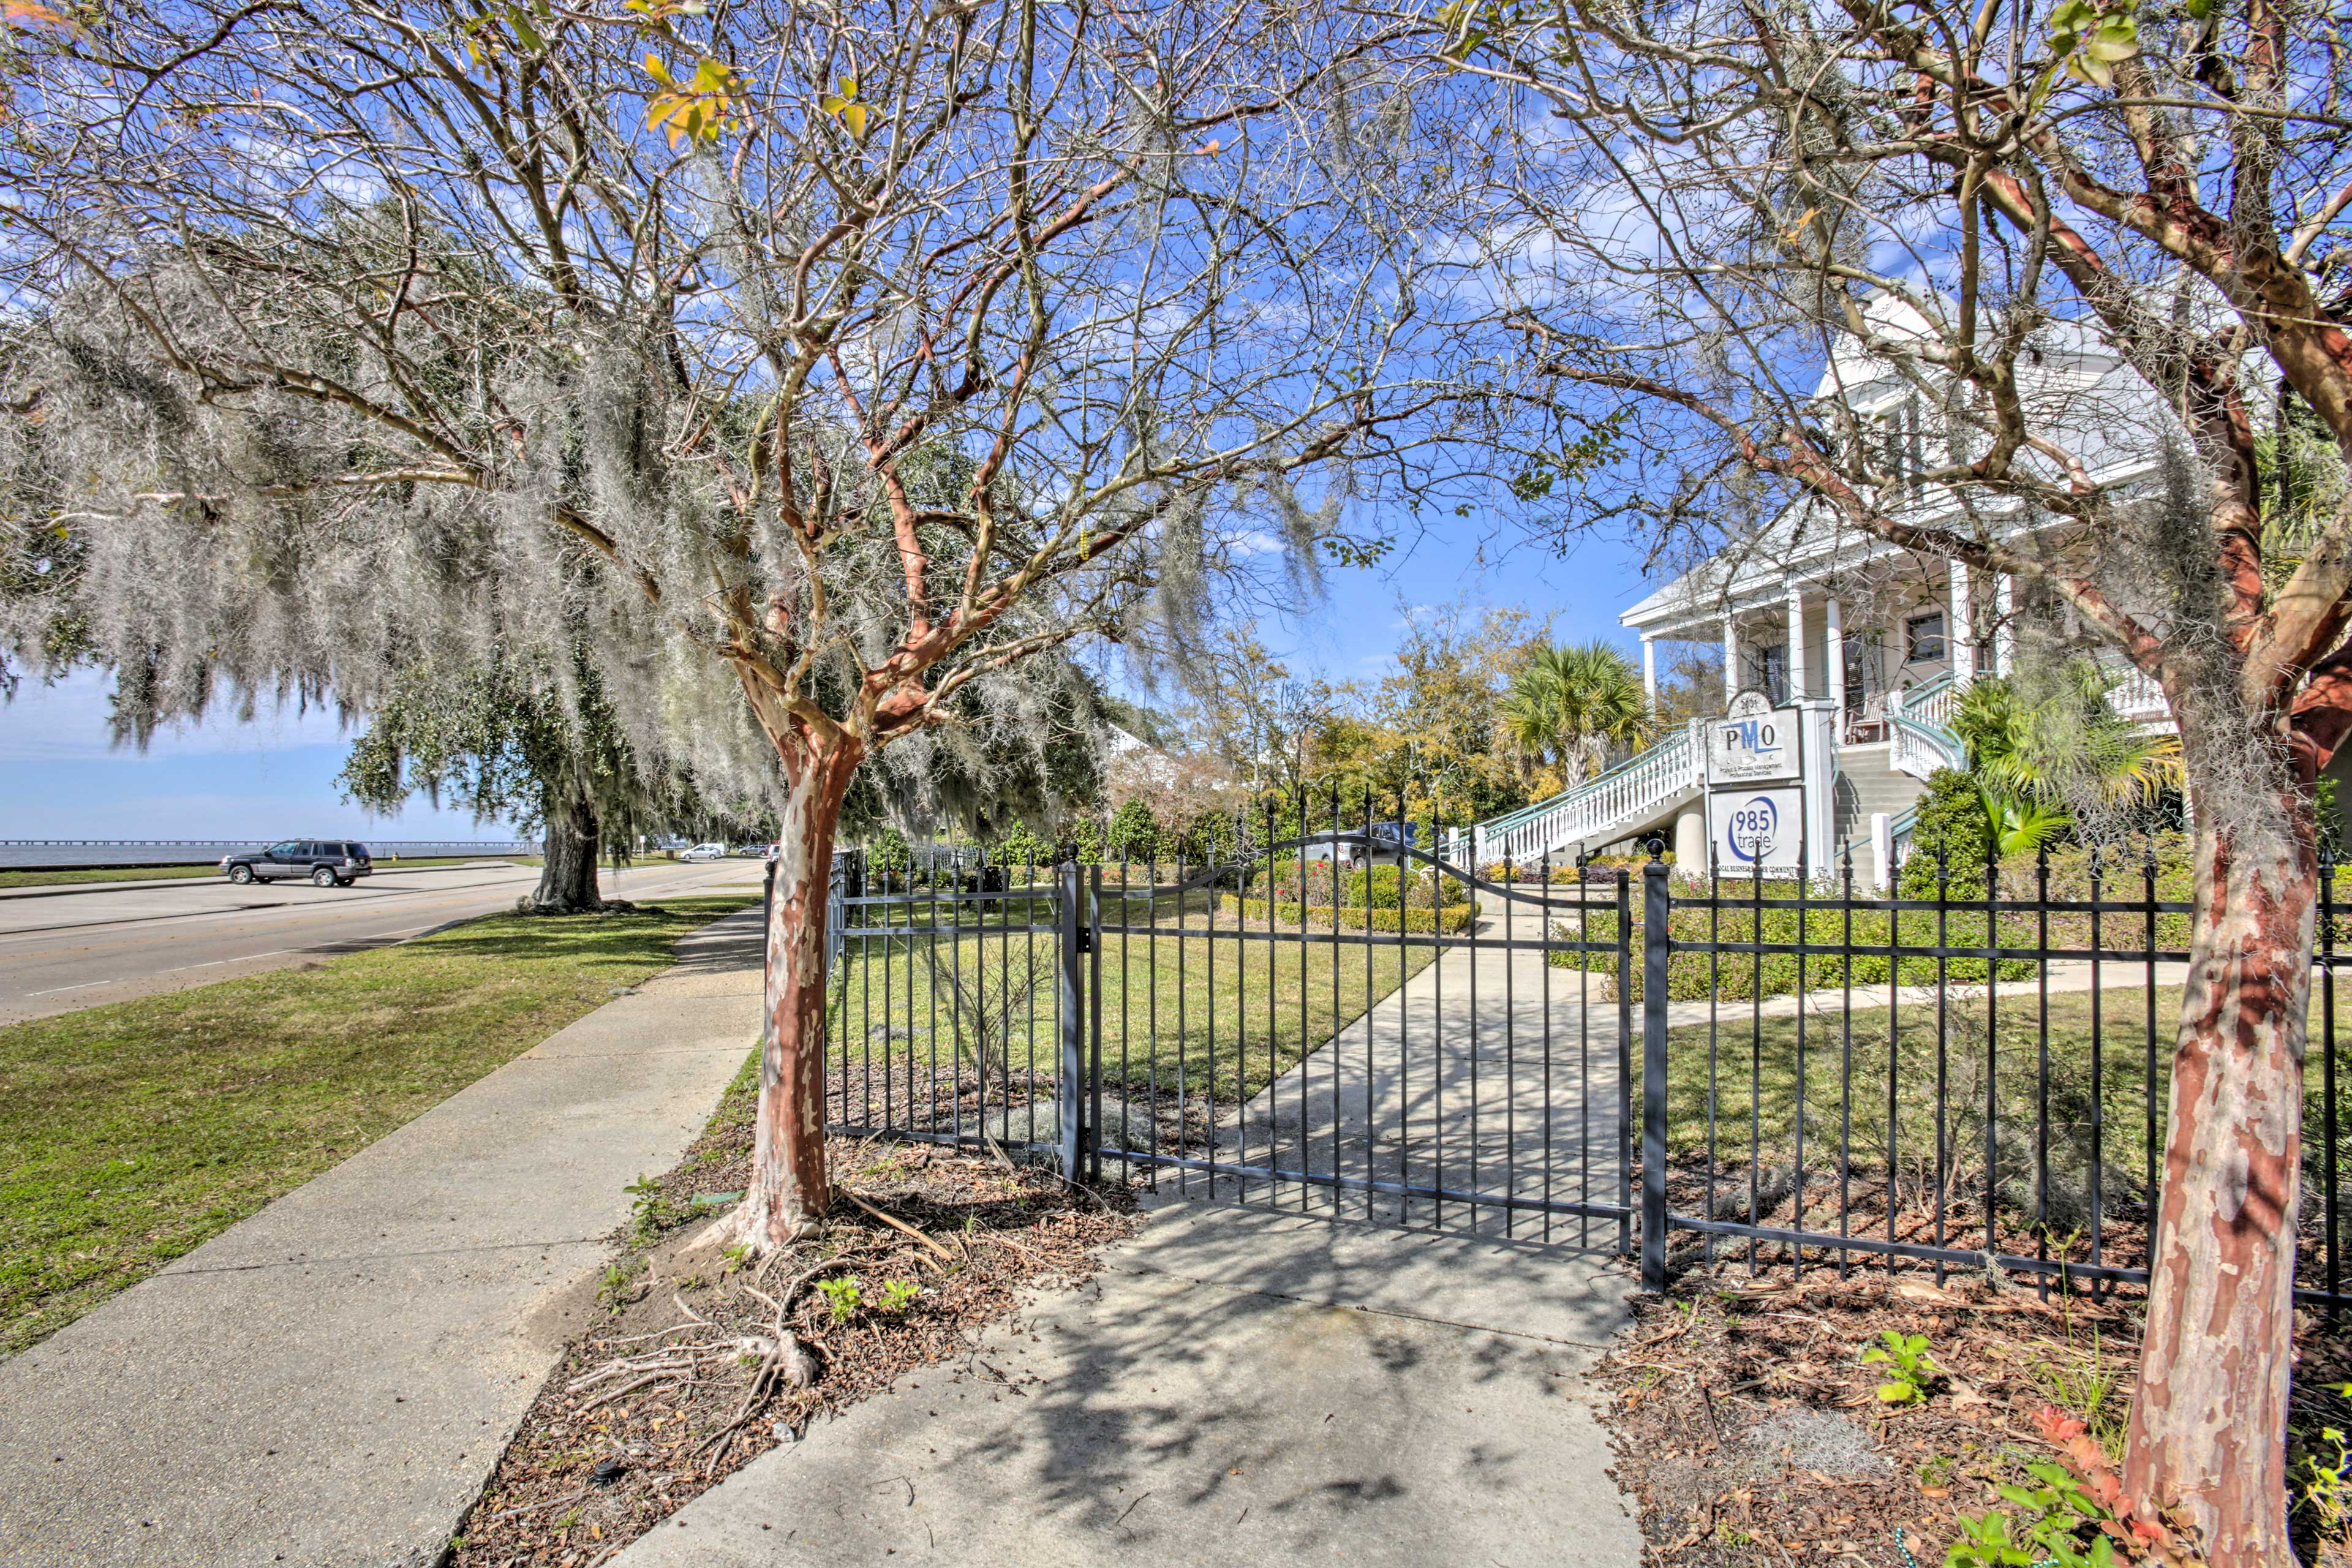 You're just a quick 2 blocks from the North Shore of Lake Pontchartrain!